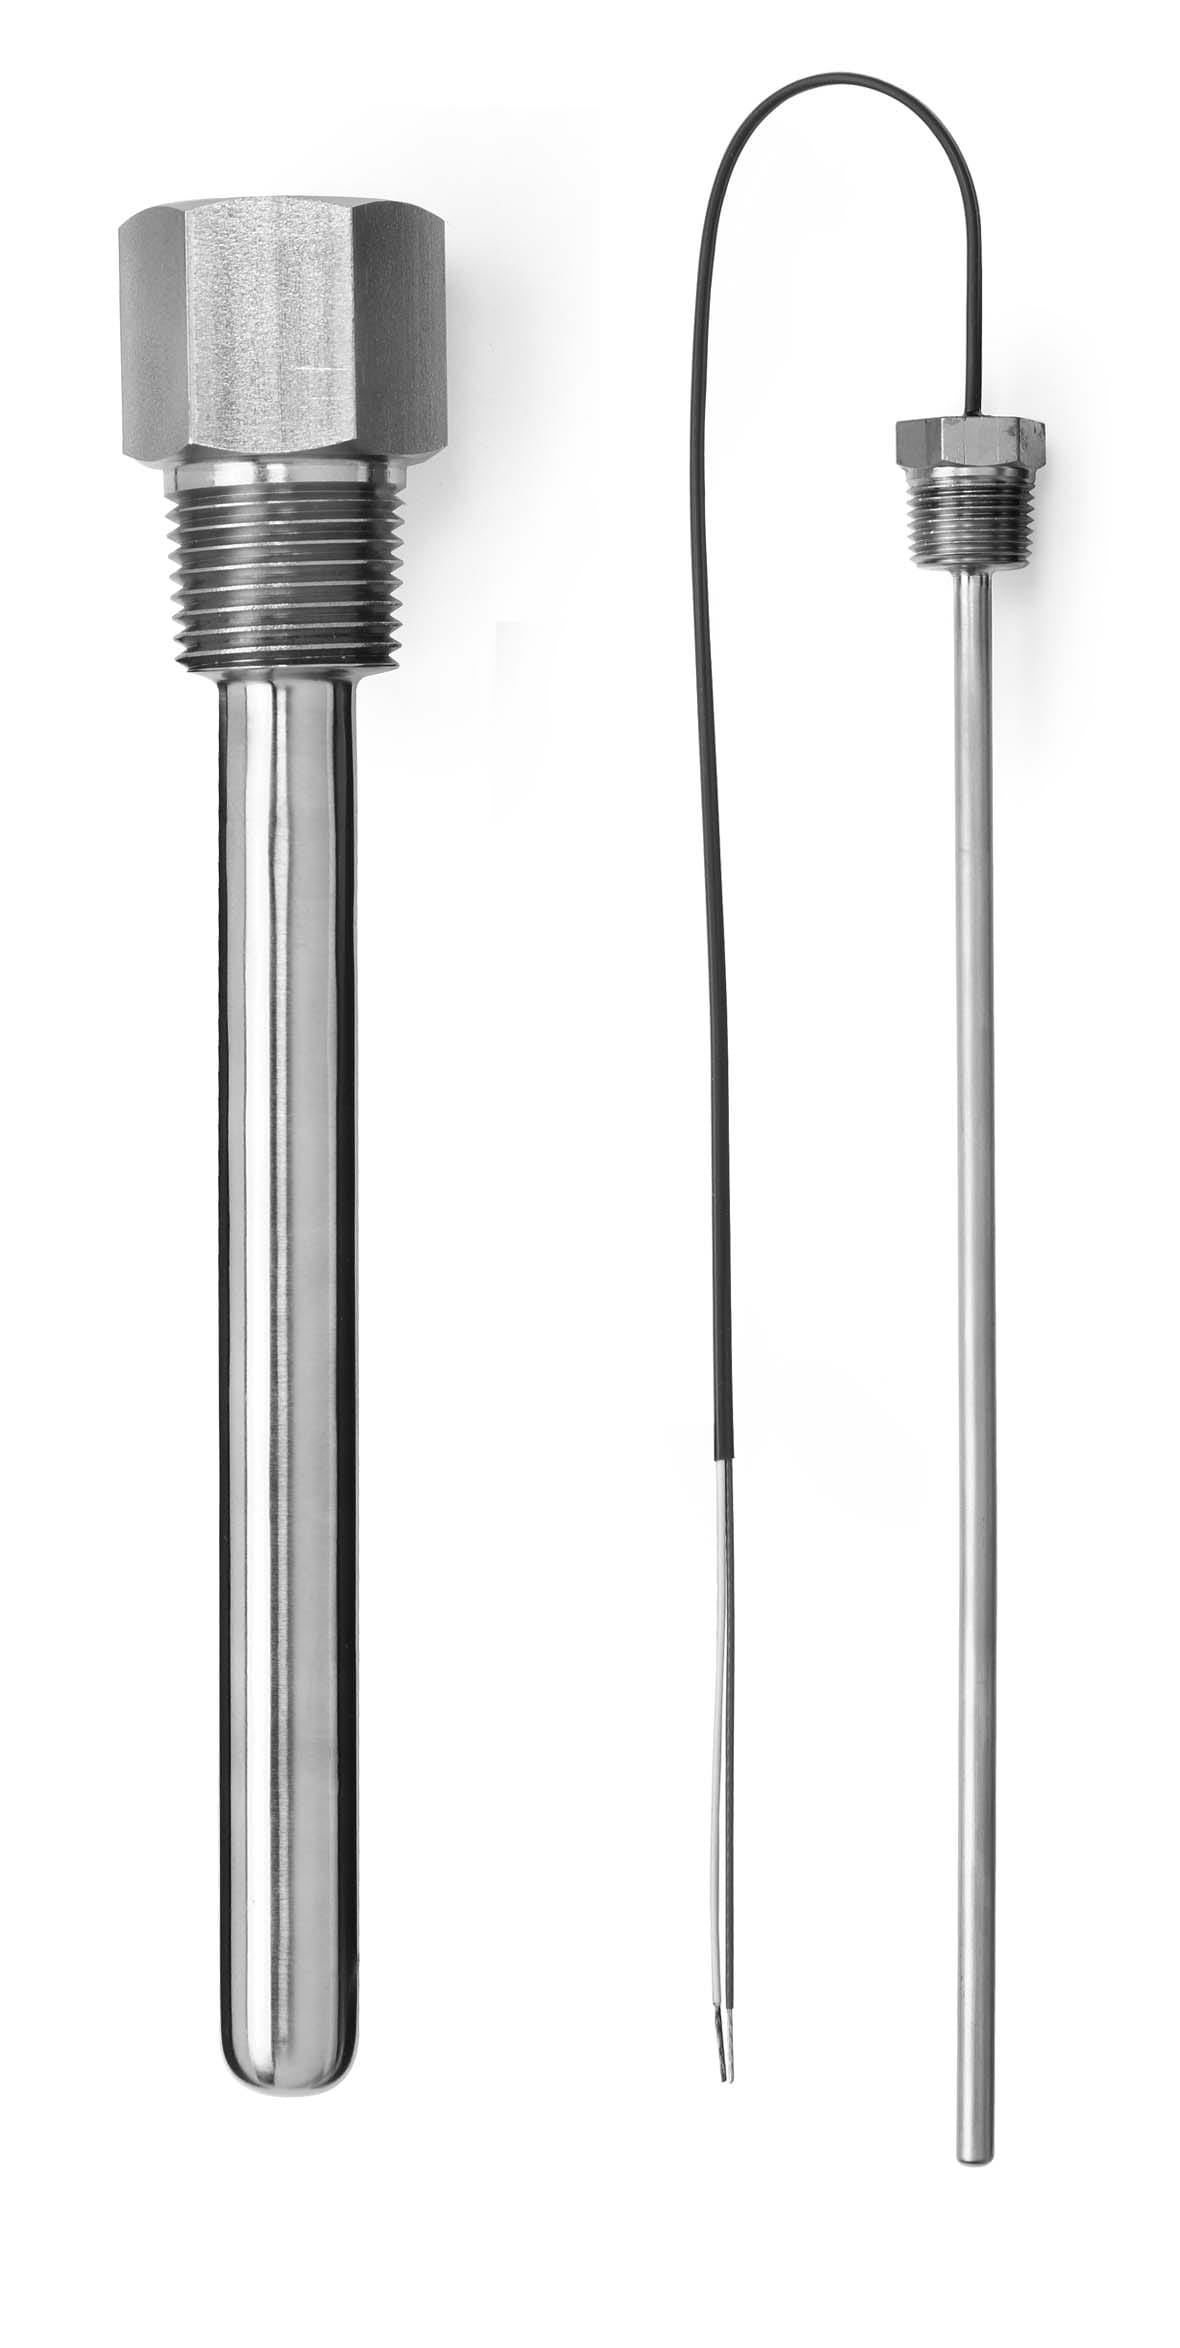 chromalox mgo thermowell